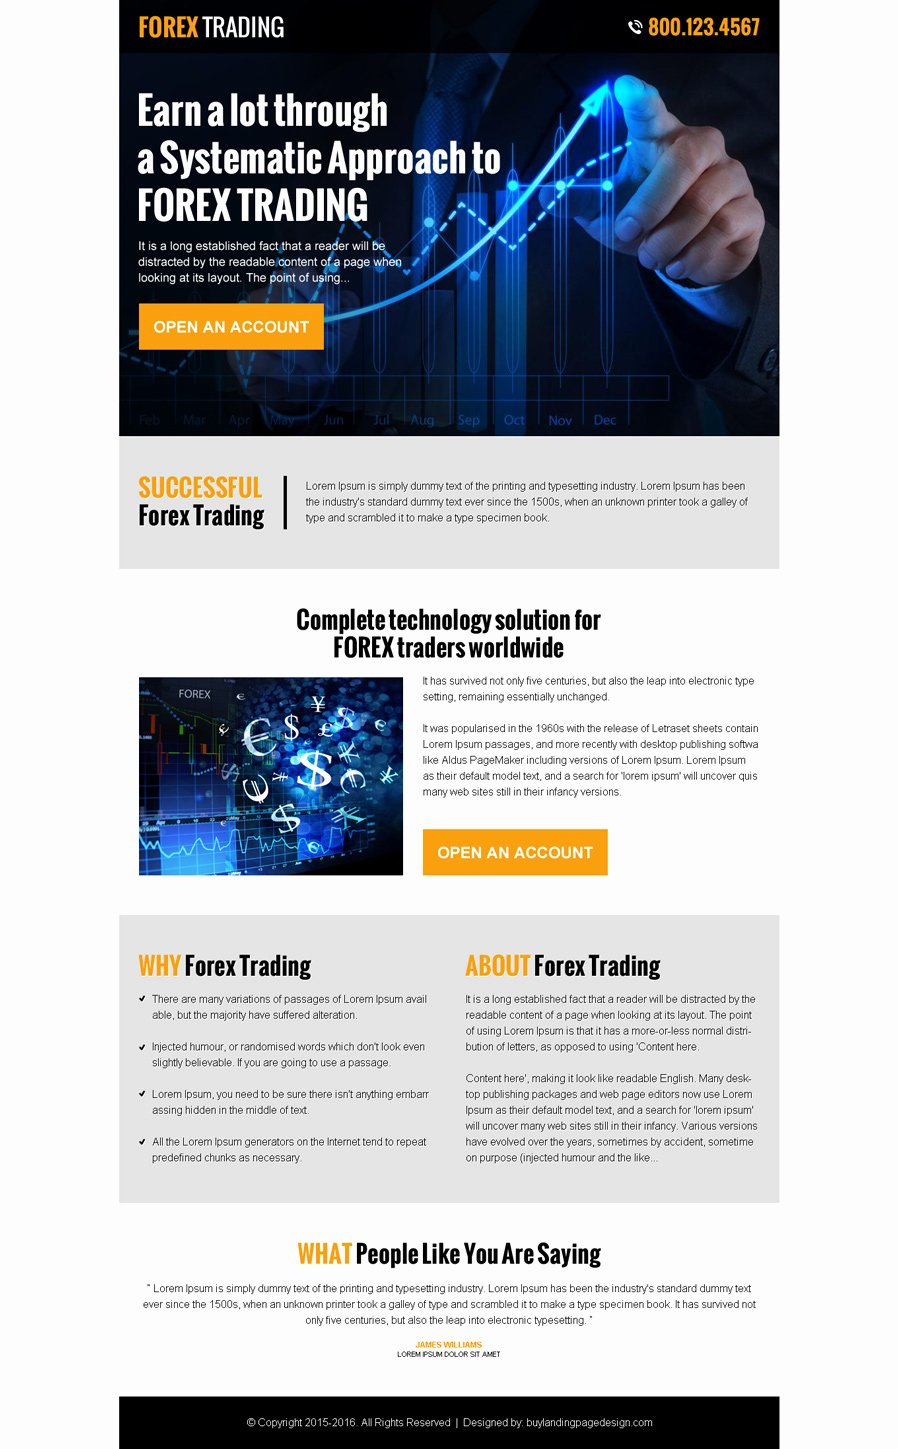 Forex Trading Plan Template Unique forex Trading Landing Pages 2015 for Best Conversion & Sales